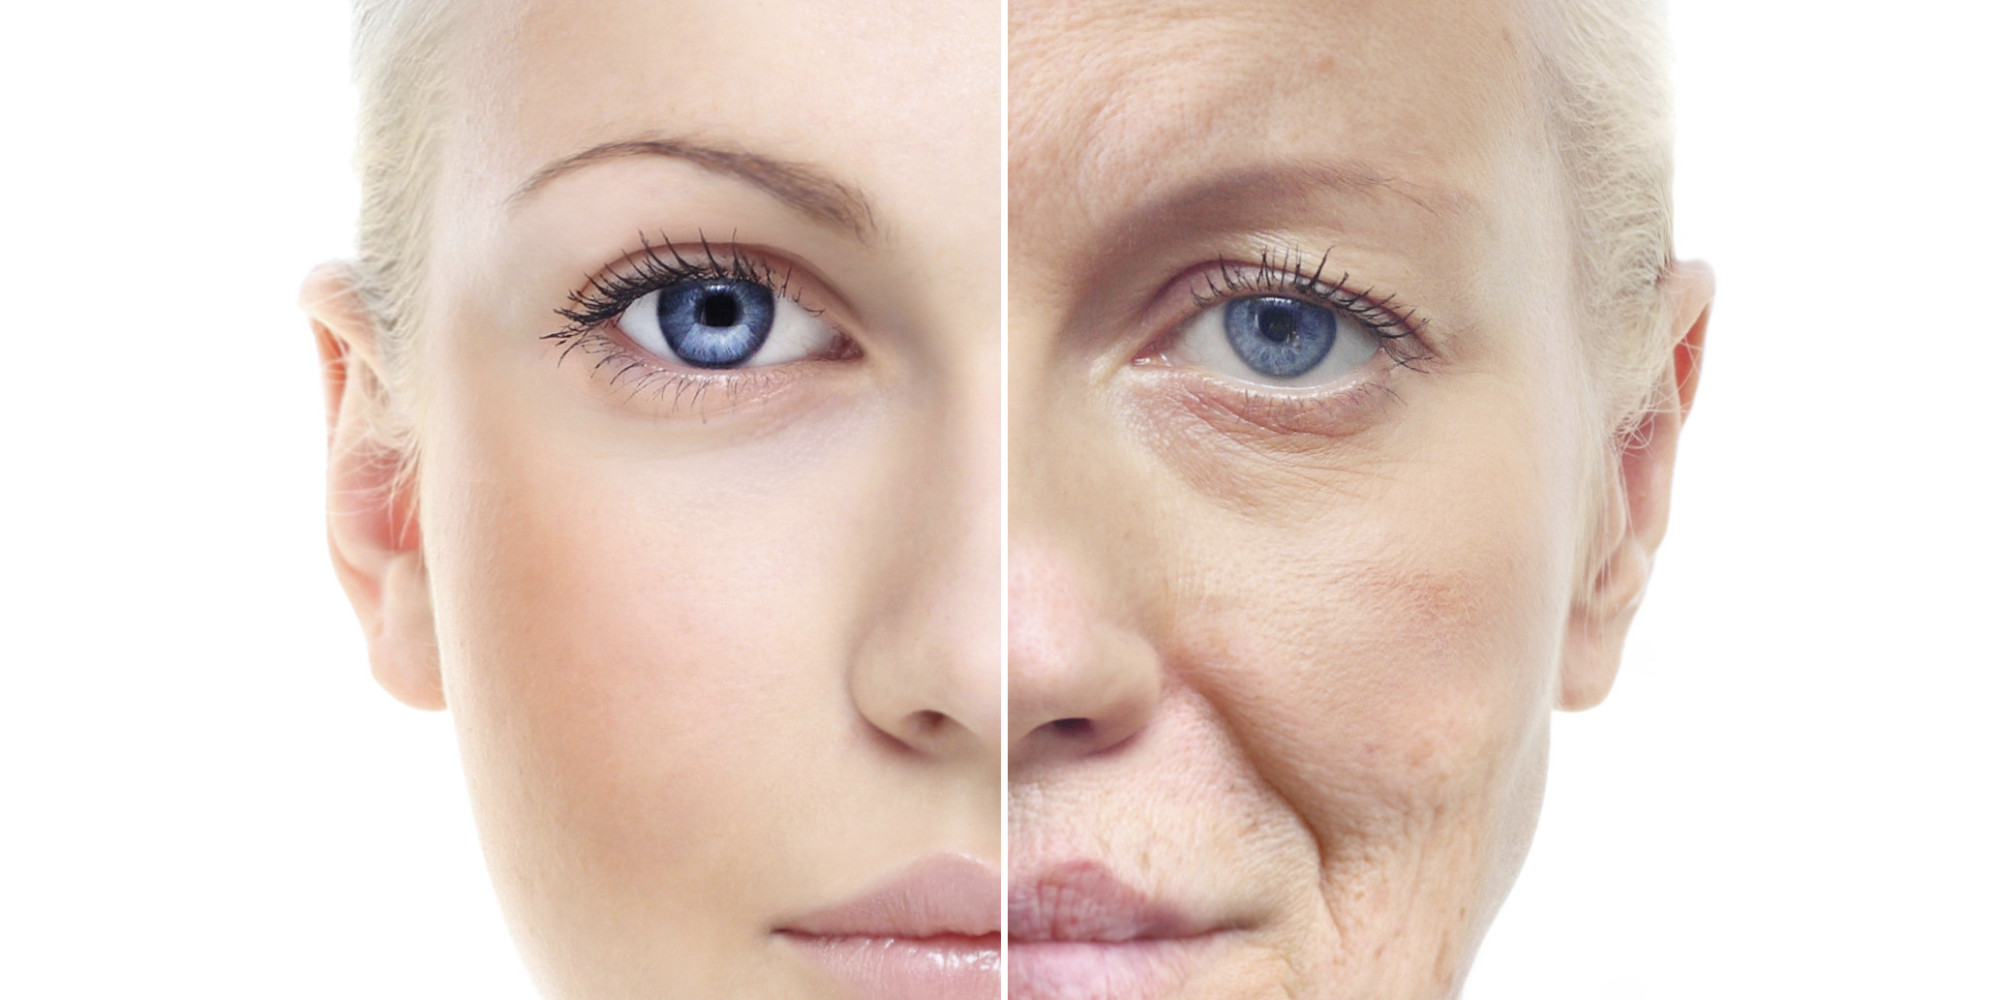 Anti-aging skin rejuvenation with PRP at Restore Beauty Loveland